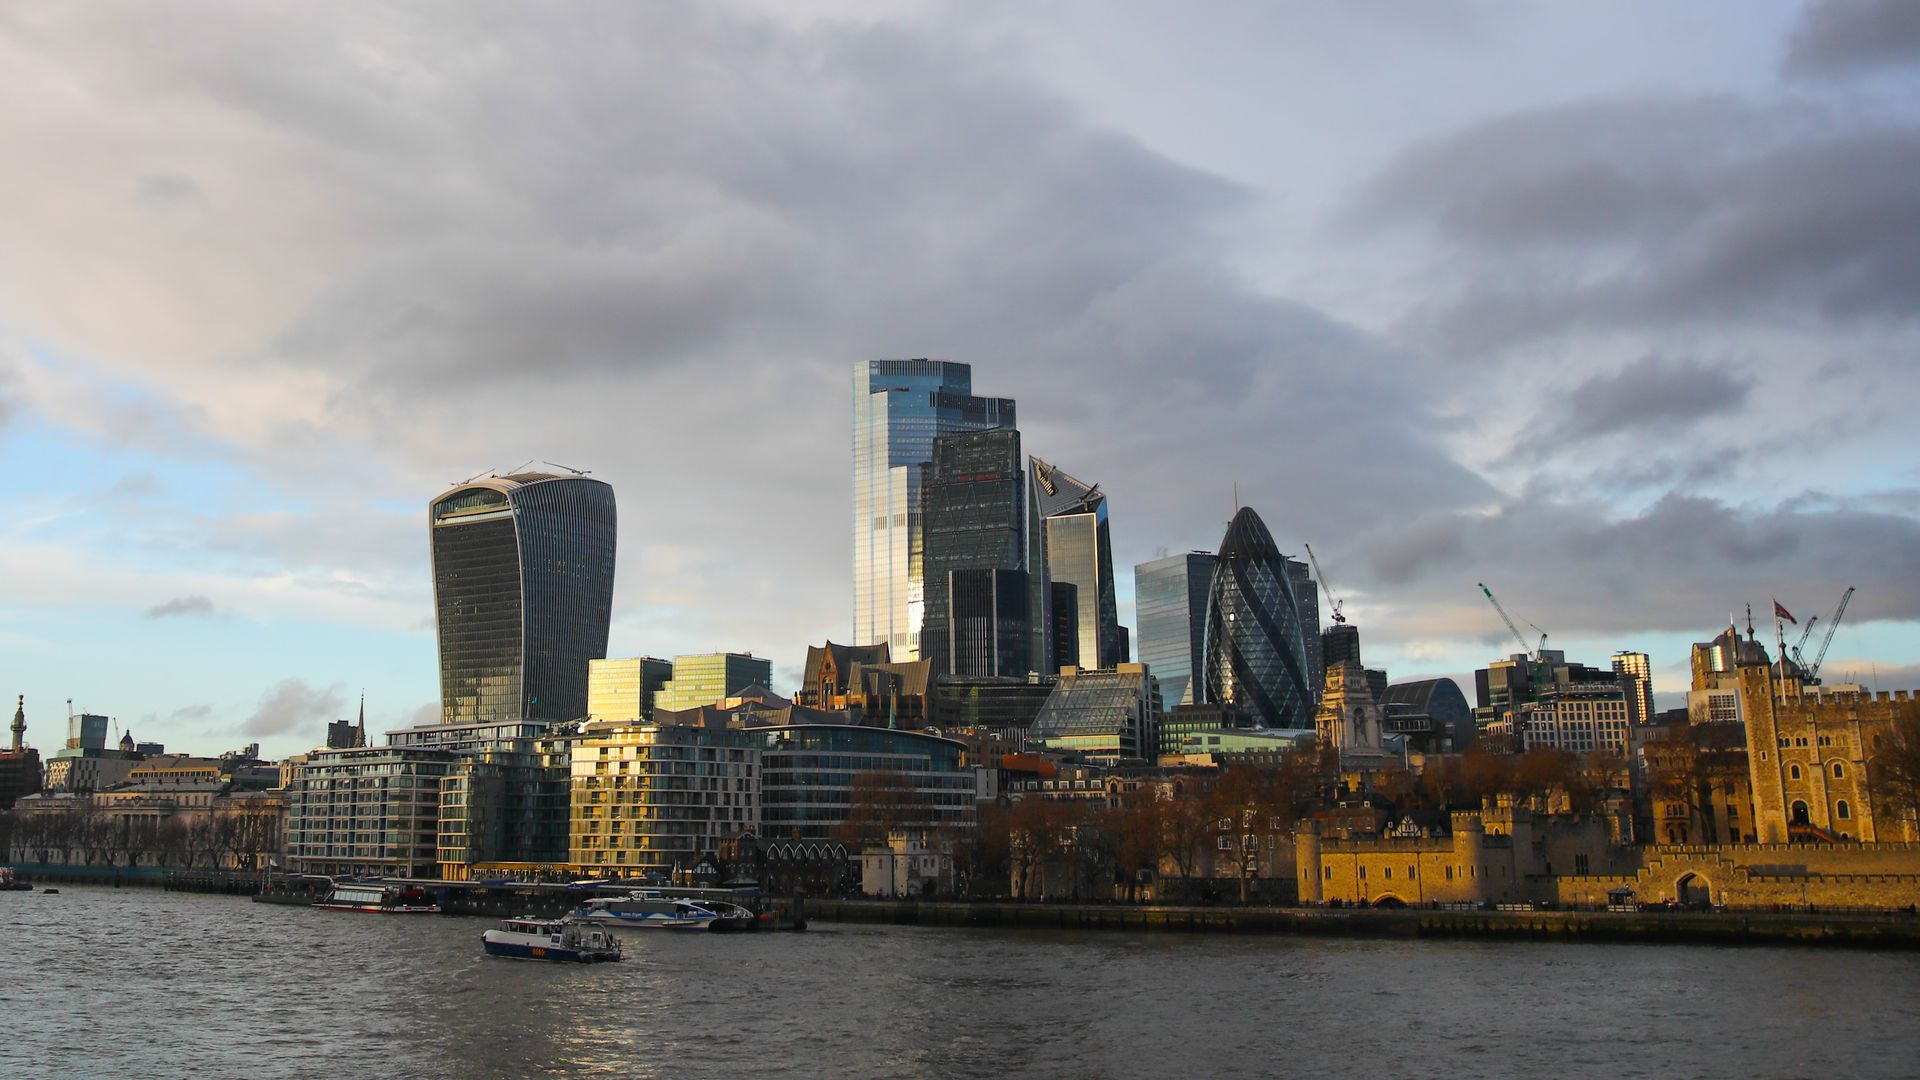 United Kingdom venture capital funding rose to a record $13.2 billion high in 2019